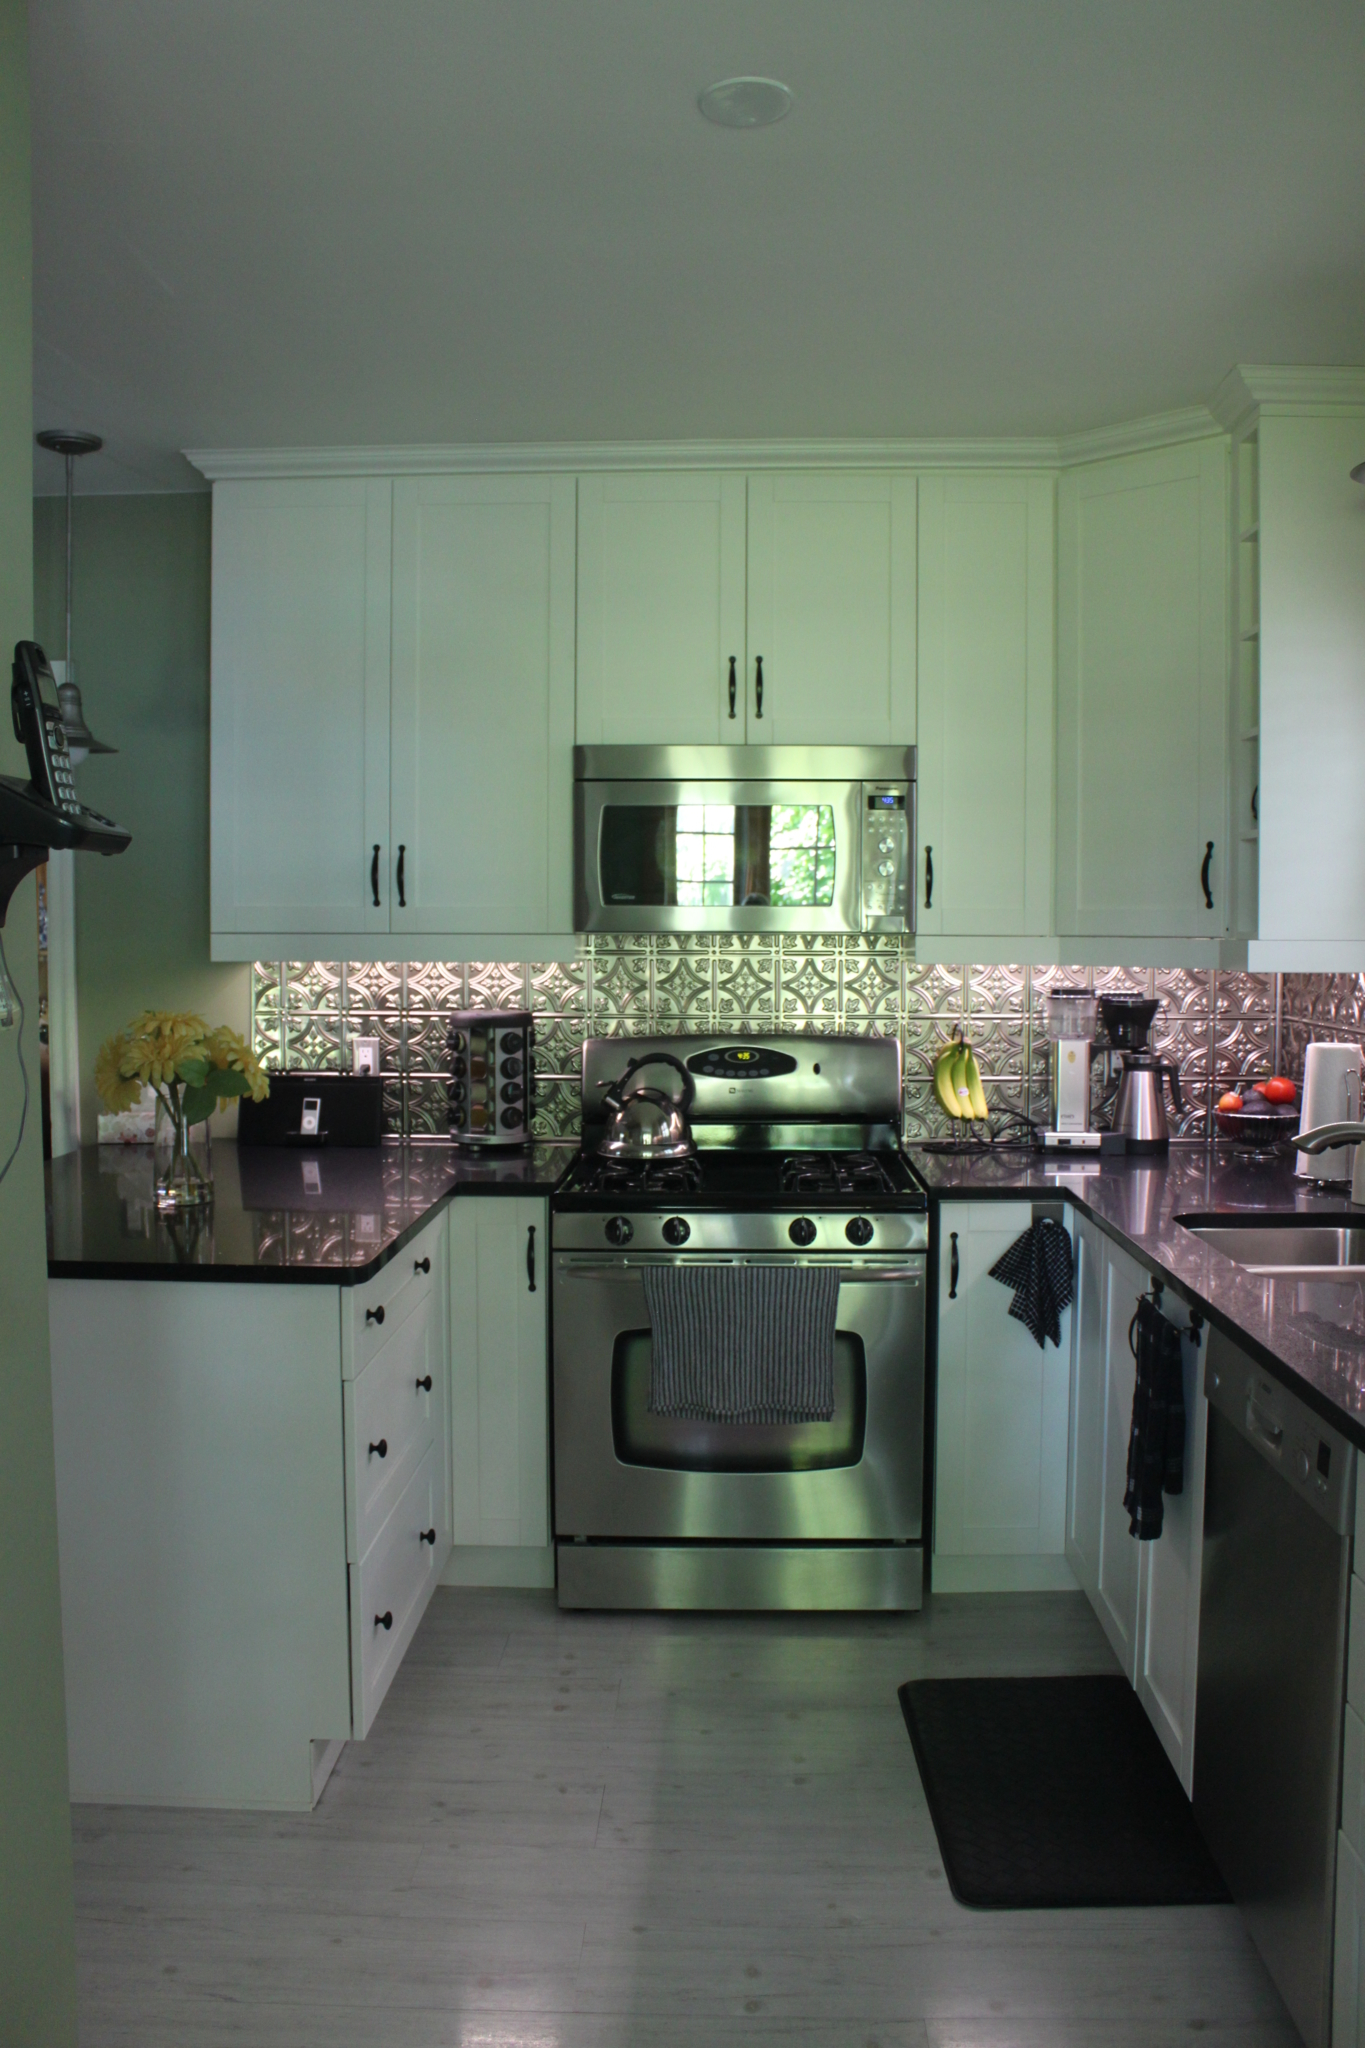 Phoenix cabinetry millwork st catharines on ourbis for Cabinex kitchen designs st catharines